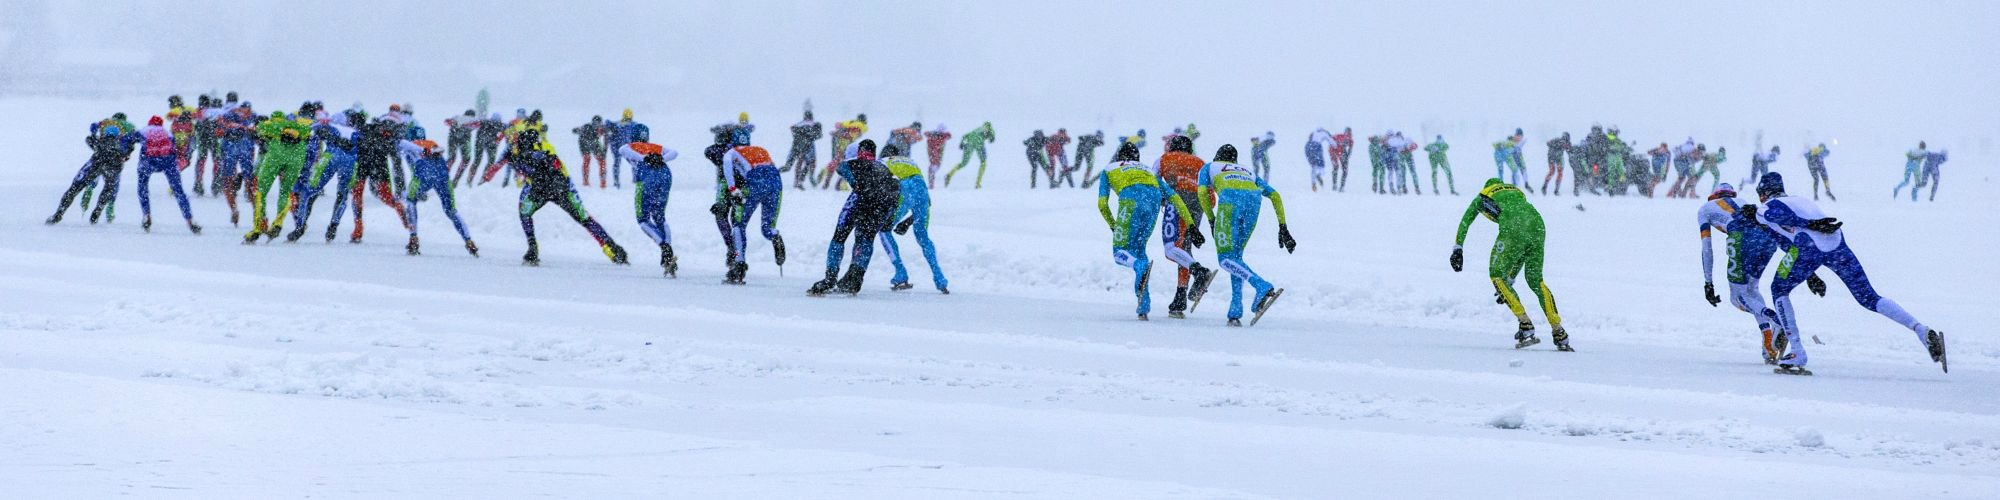 Elfstedentocht header